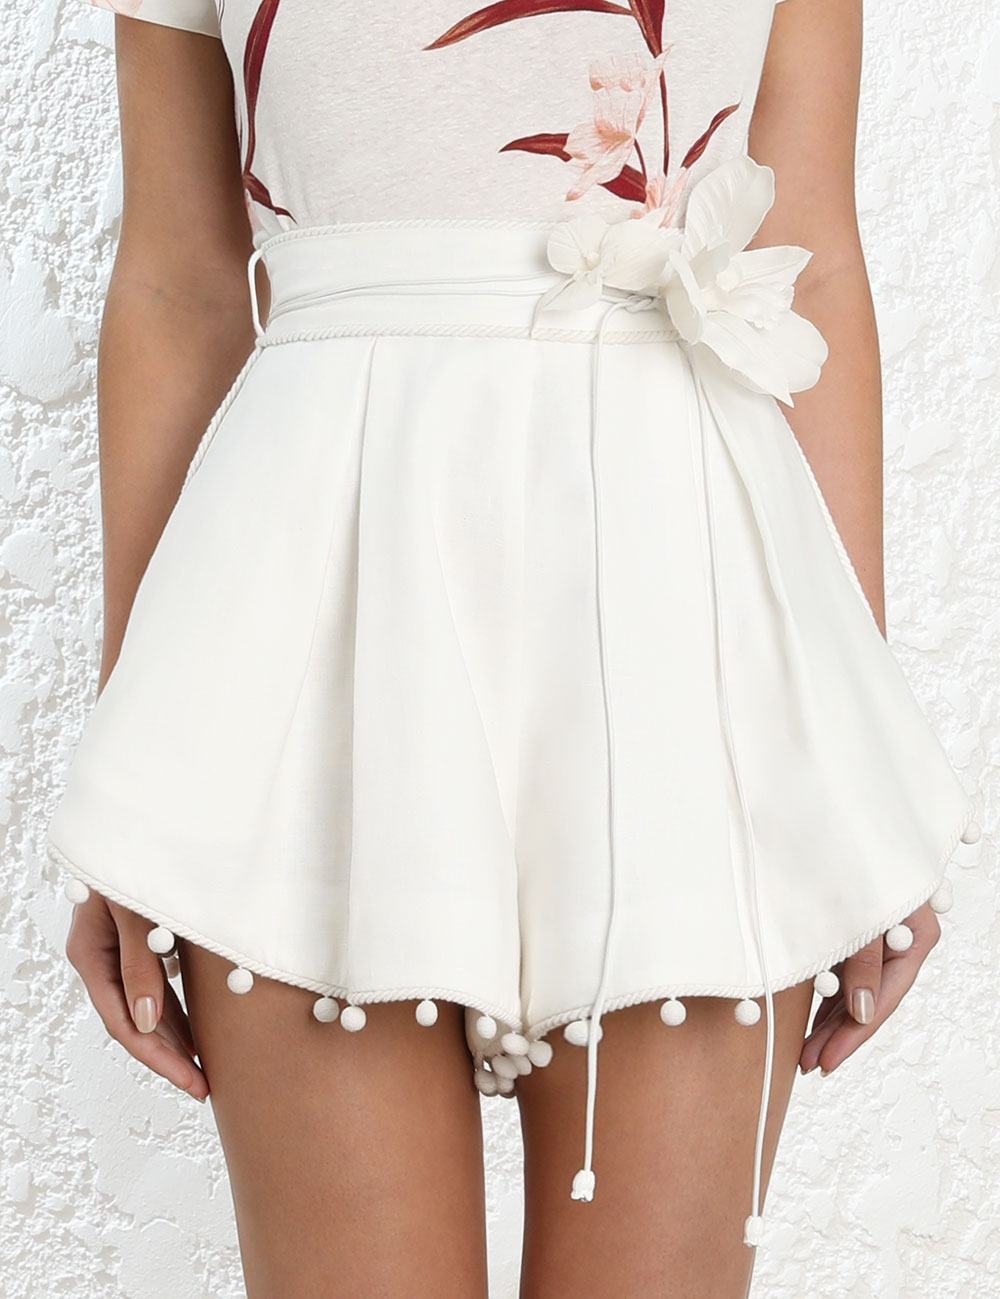 Corsage Bauble Short